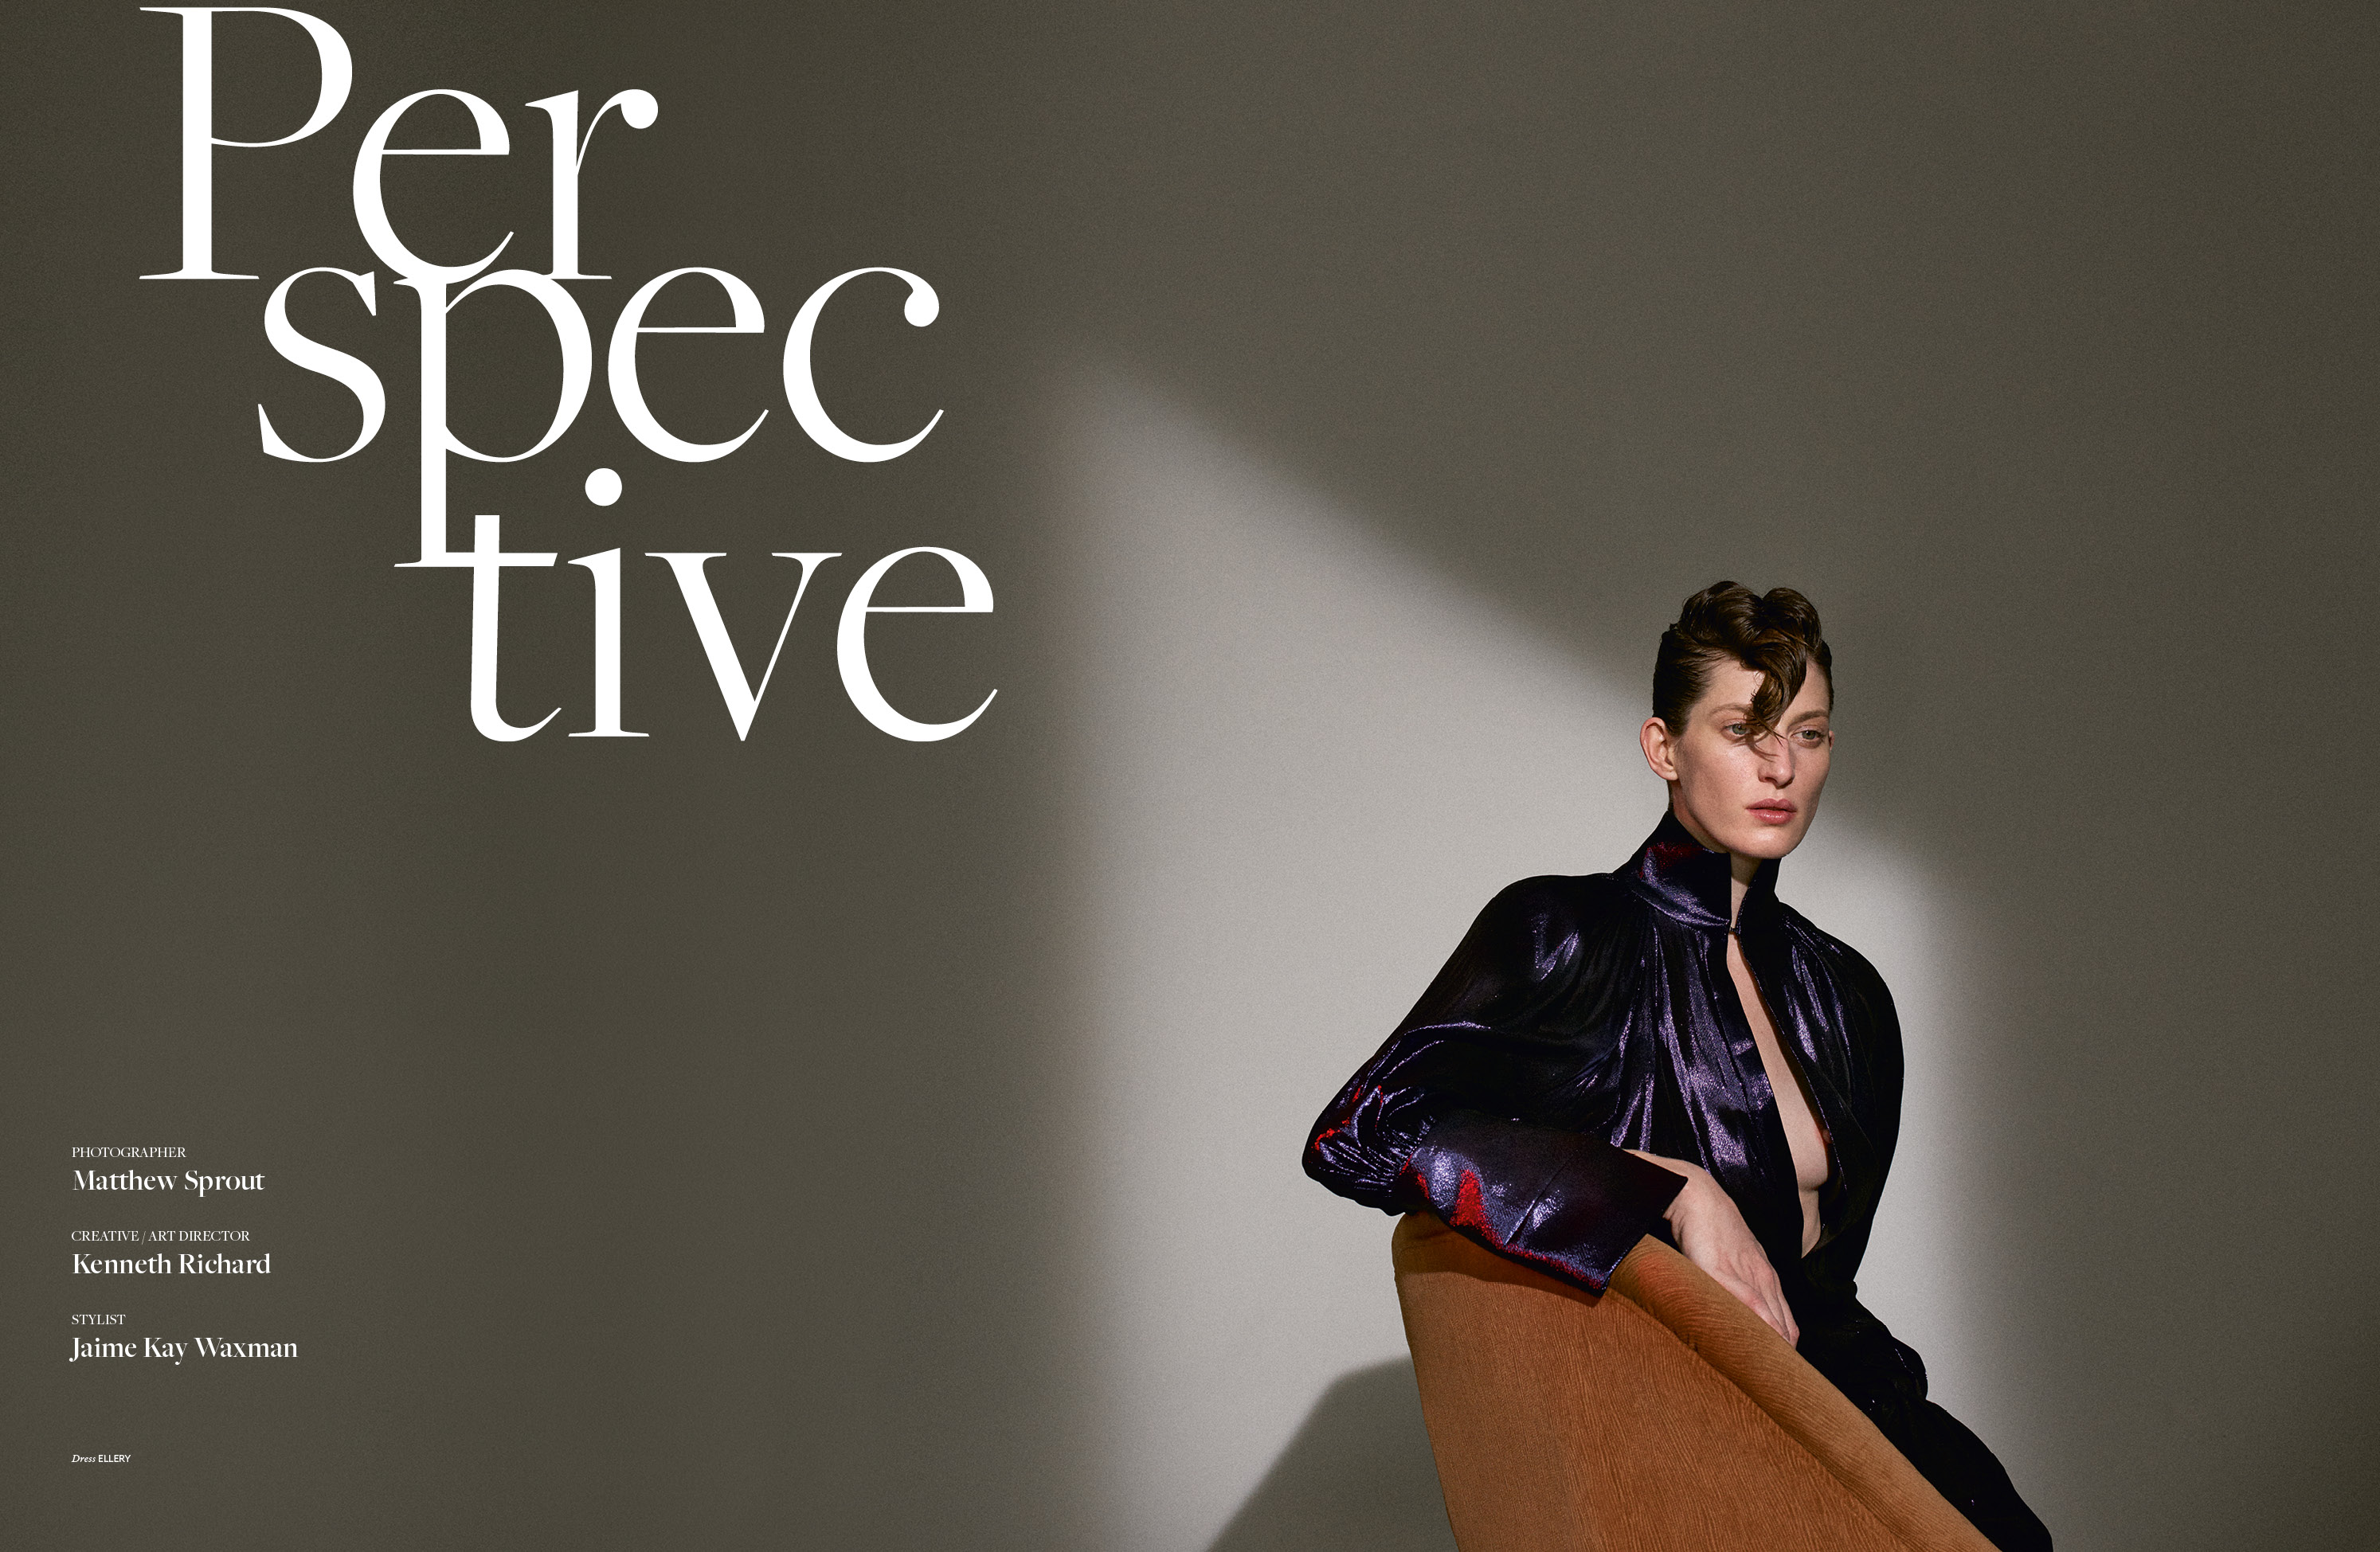 Perspective - Matthew Sprout, Jaime Kay Waxman, Kenneth Richard